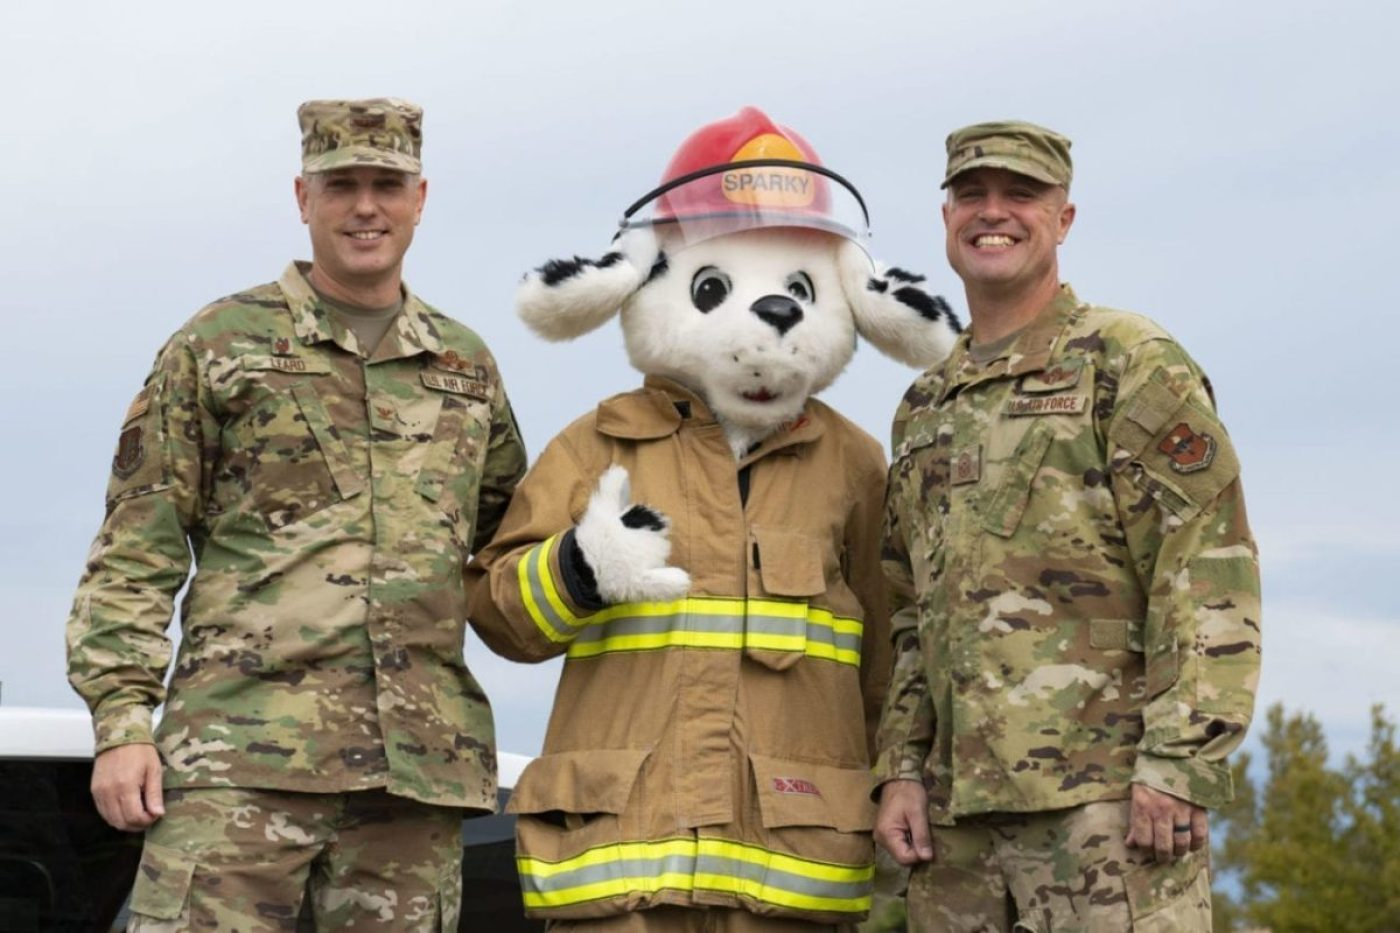 U.S. Air Force Col. Matthew Leard, 97th Air Mobility Wing commander, left, and U.S. Air Force Chief Master Sgt. Randy Kay III, 97th AMW command chief, pose for a photo with Sparky, the 97th Civil Engineer Squadron firedog, at the start of the Fire Prevention week parade, Sept. 28, 2019, at Altus Air Force Base, Okla. (U.S. Air Force photo by Airman 1st Class Breanna Klemm)